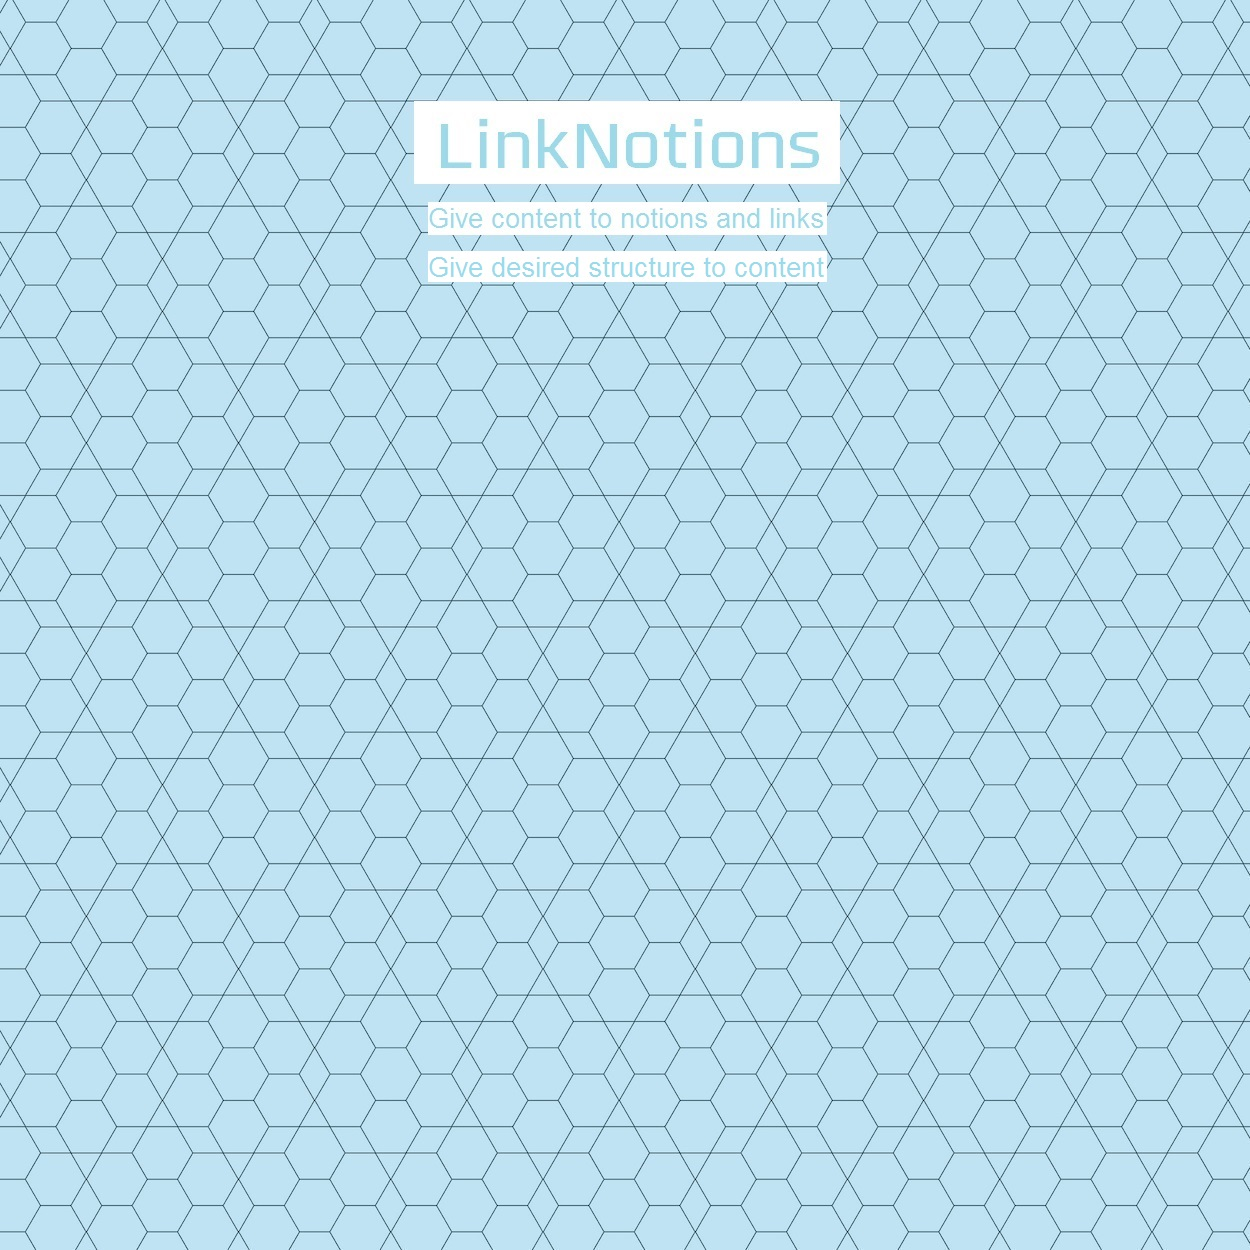 LN-titre-6-Give-content-to-notions-and-links-structure